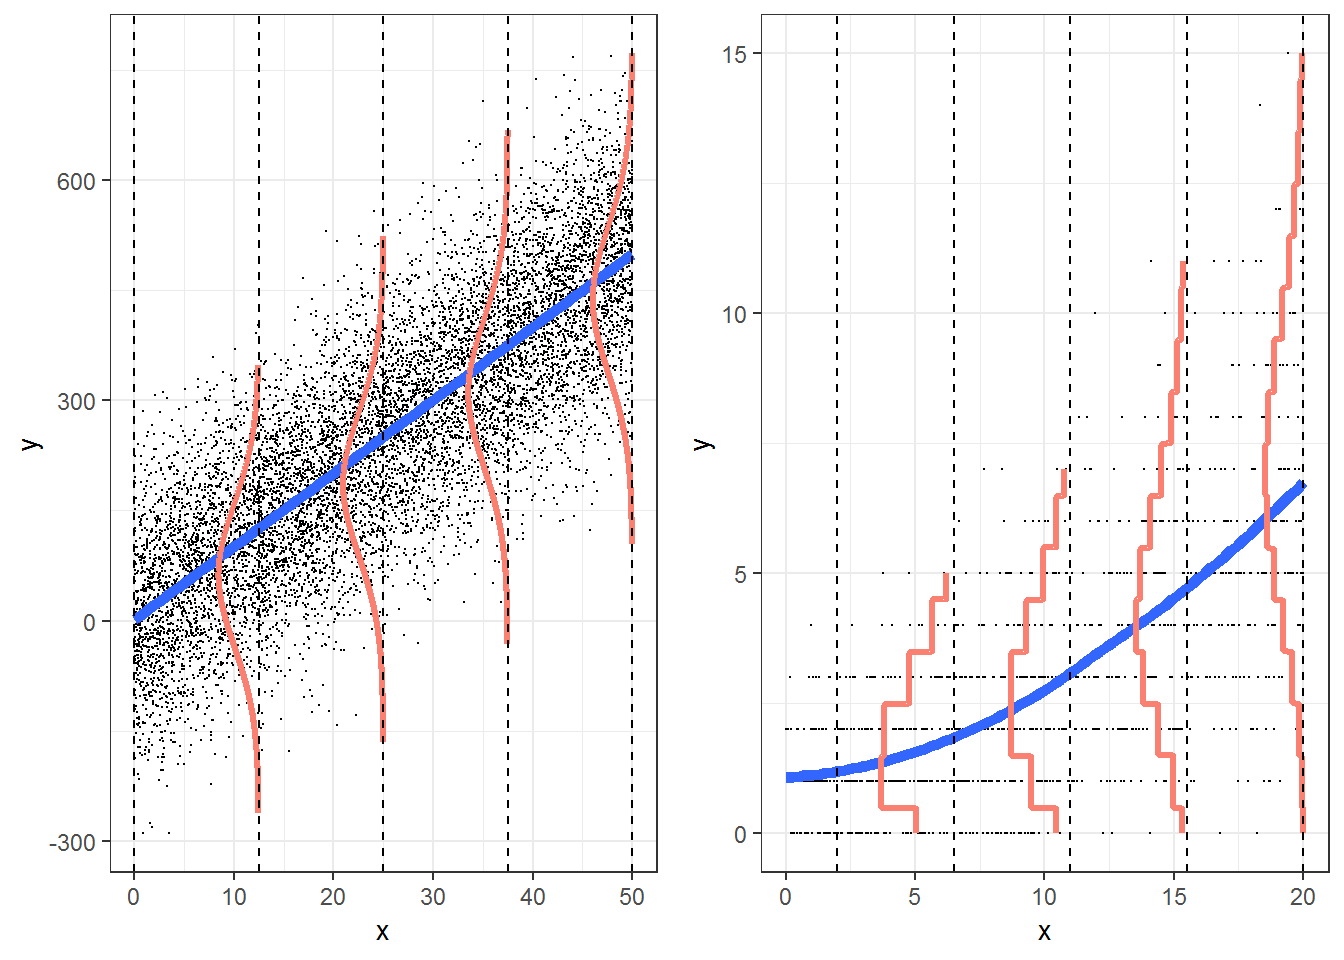 Chapter 4 Poisson Regression | Broadening Your Statistical